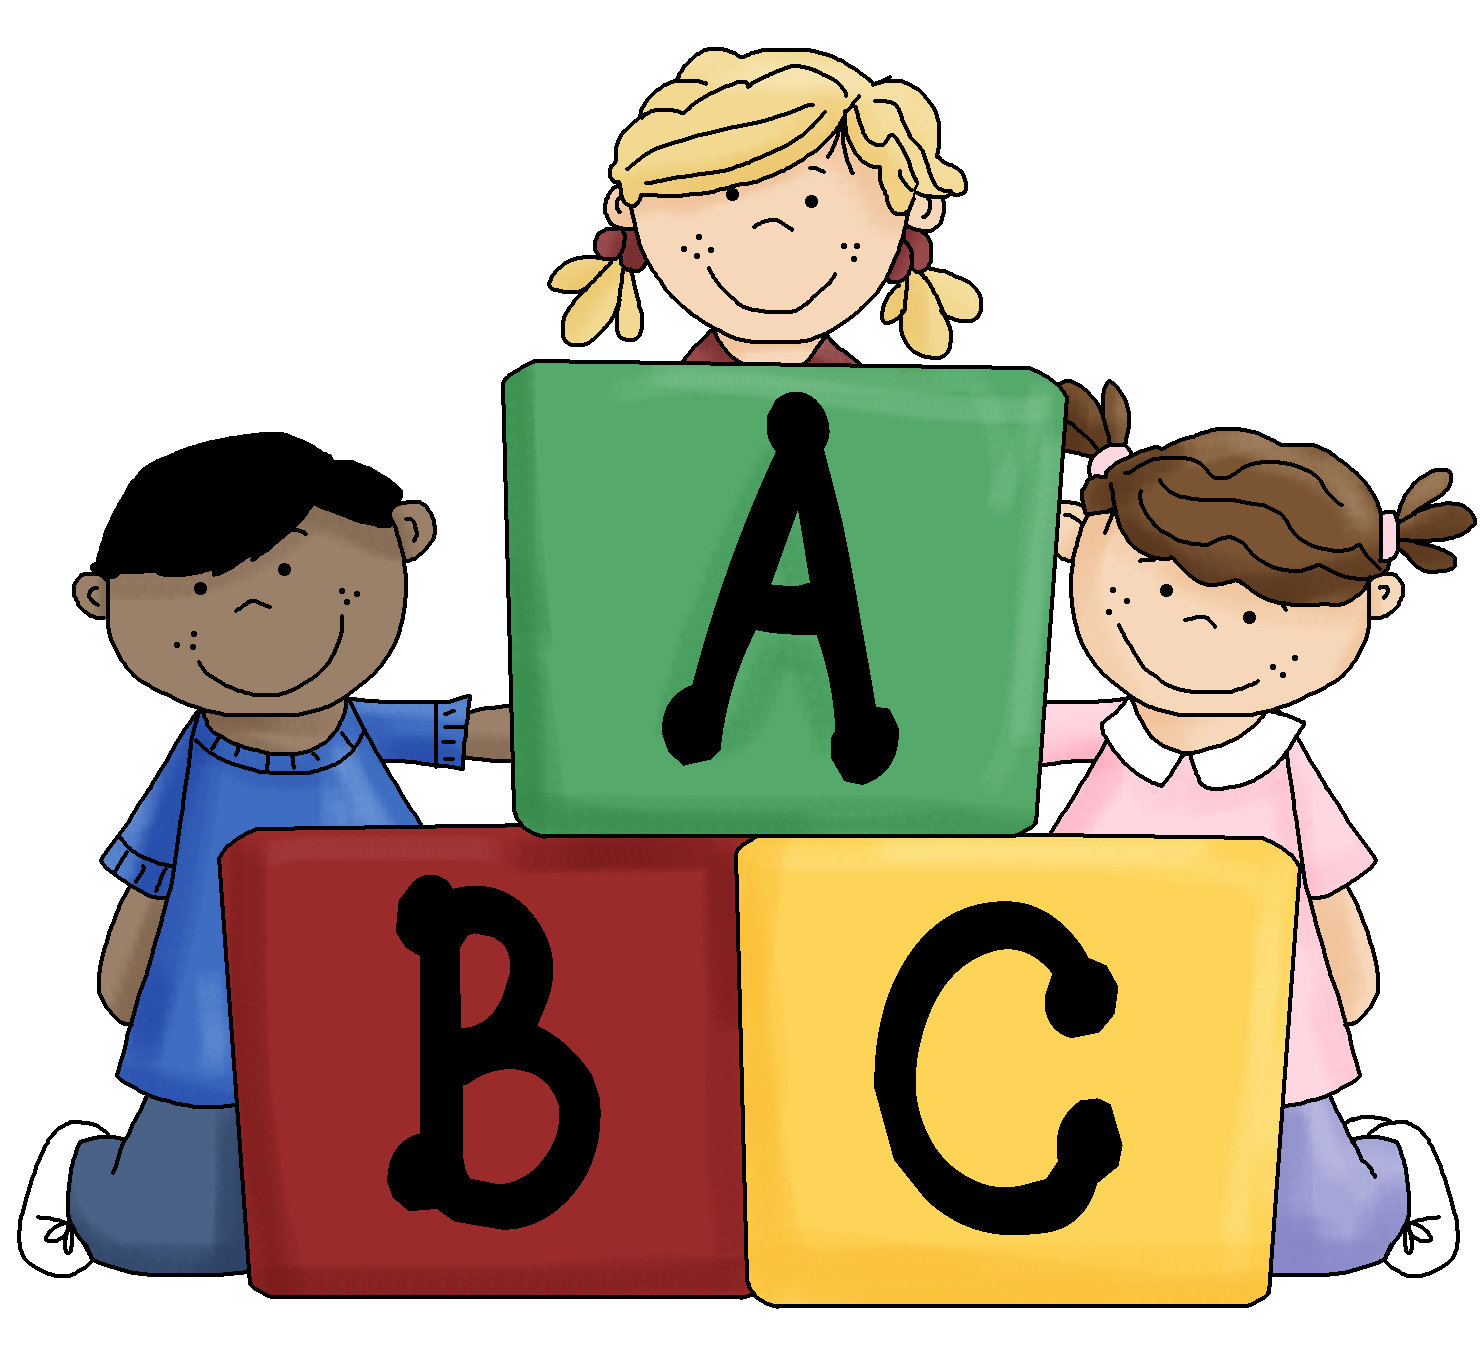 Free Abc Clipart, Download Free Clip Art, Free Clip Art on.